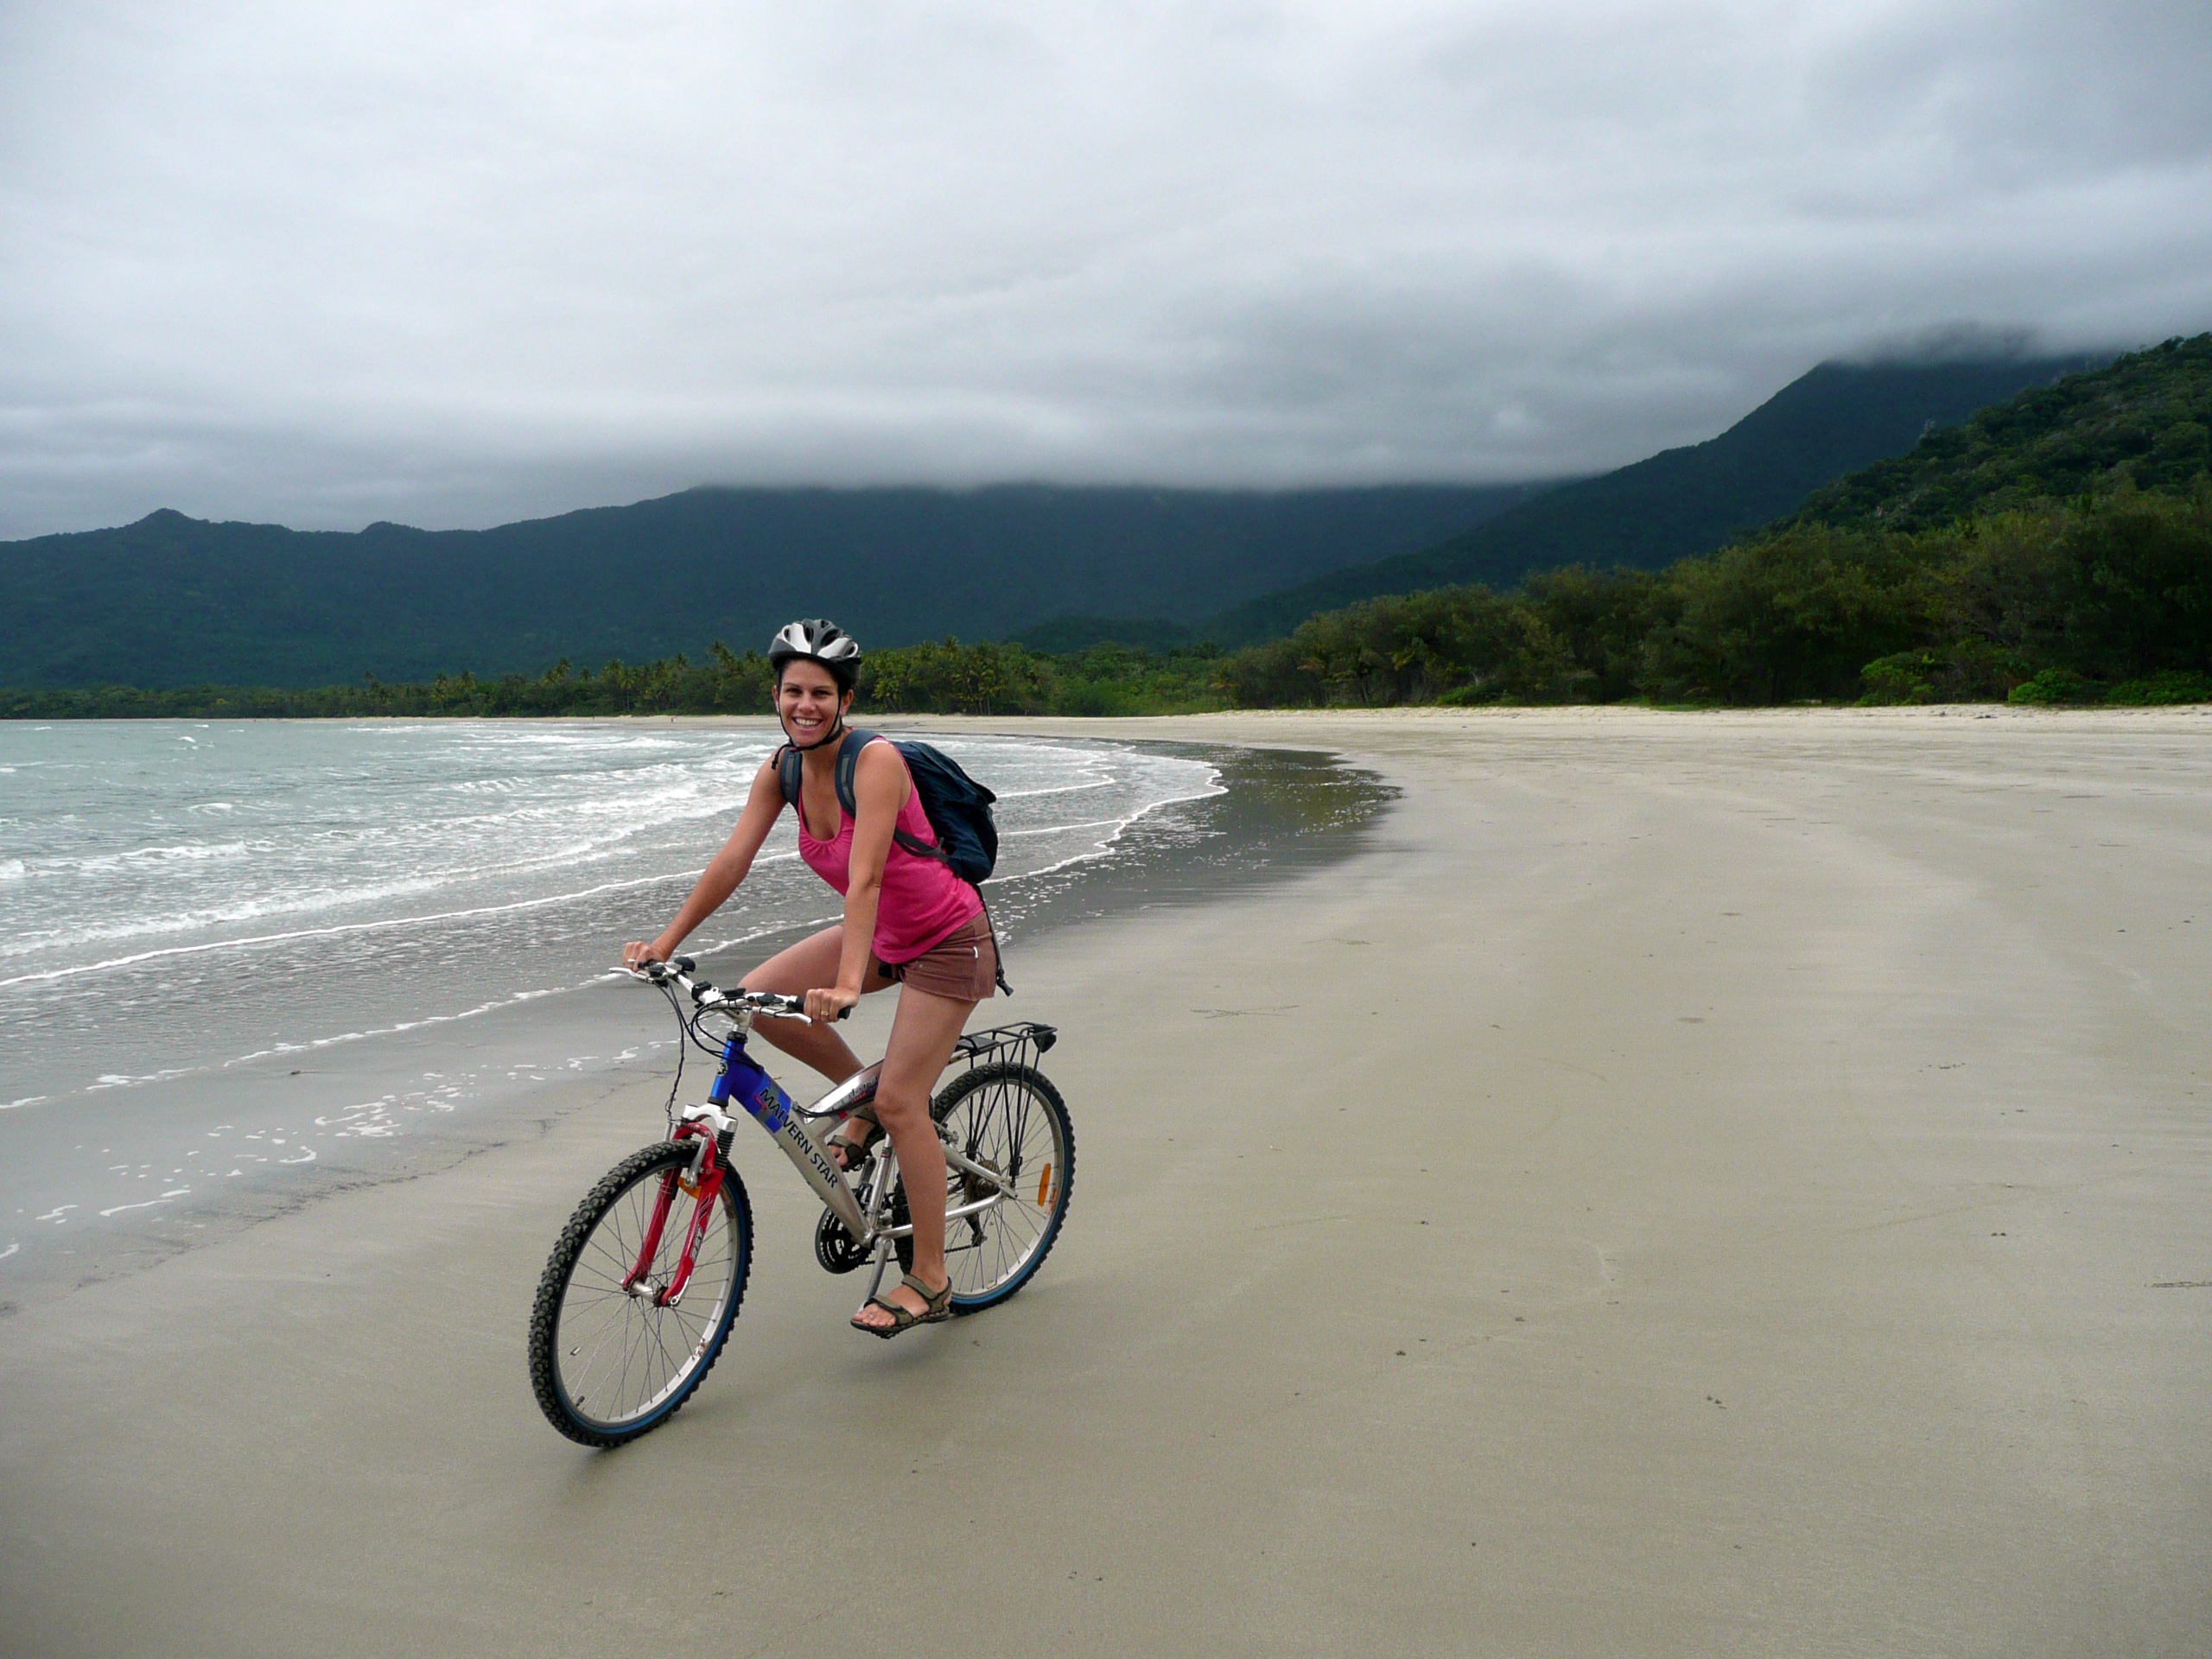 Clare cycling along the beach at Cape Tribulation